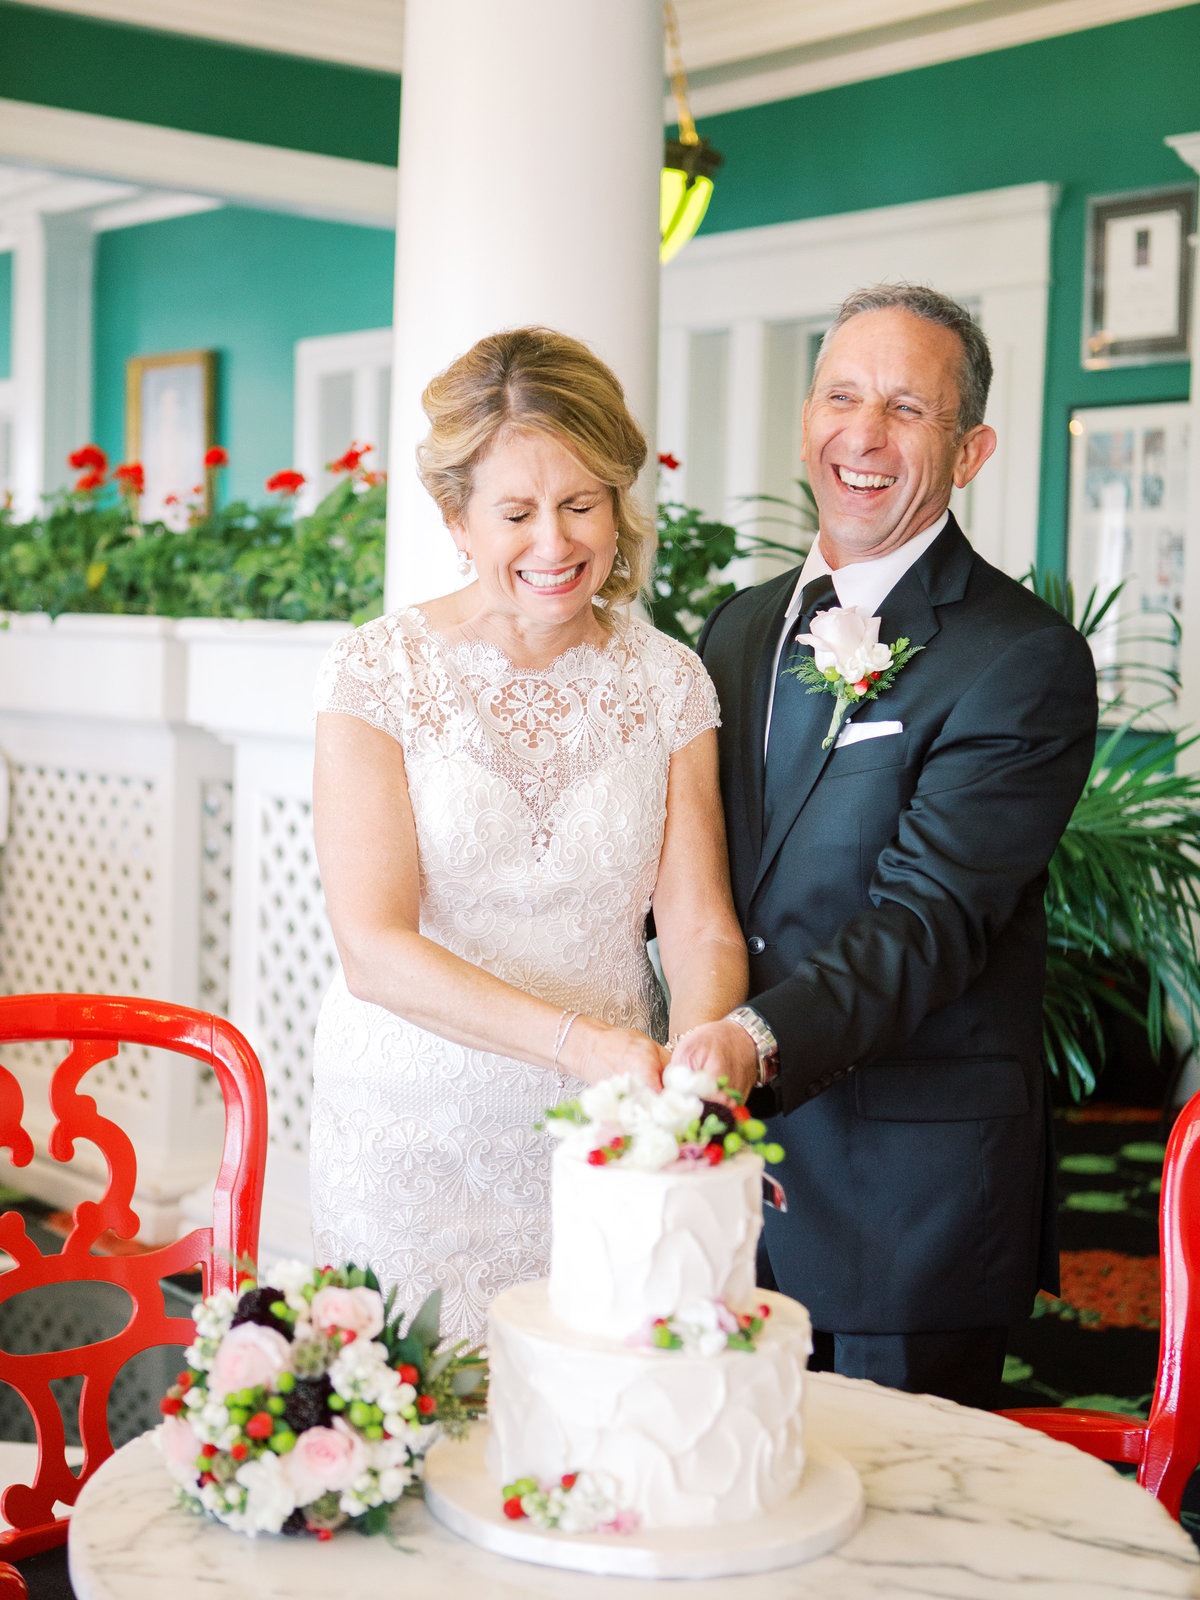 Mackinac Island Wedding - Debbie-1046